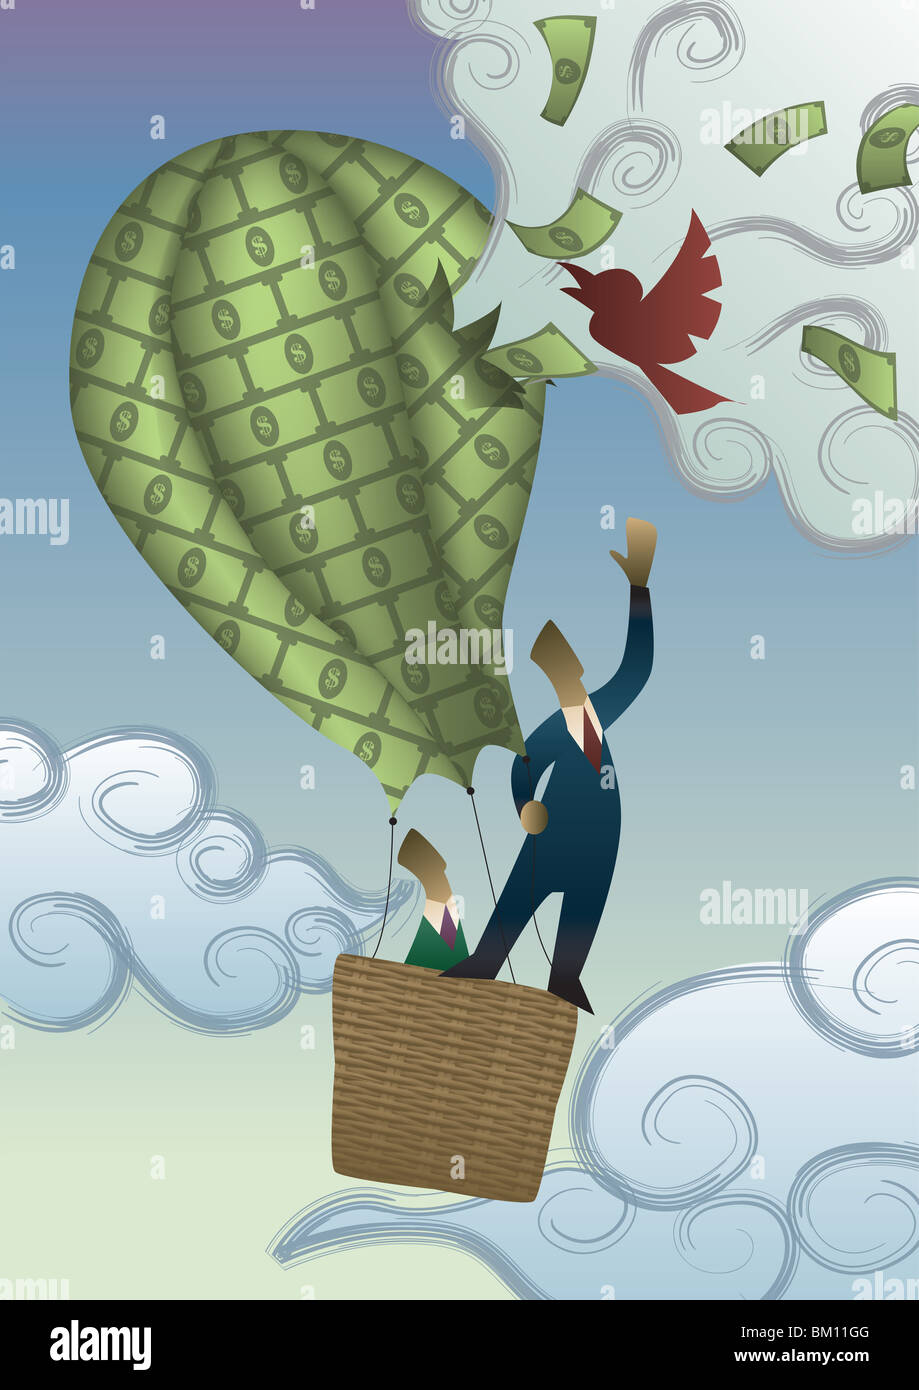 Two businessmen in a hot air balloon of money being burst by a bird - Stock Image